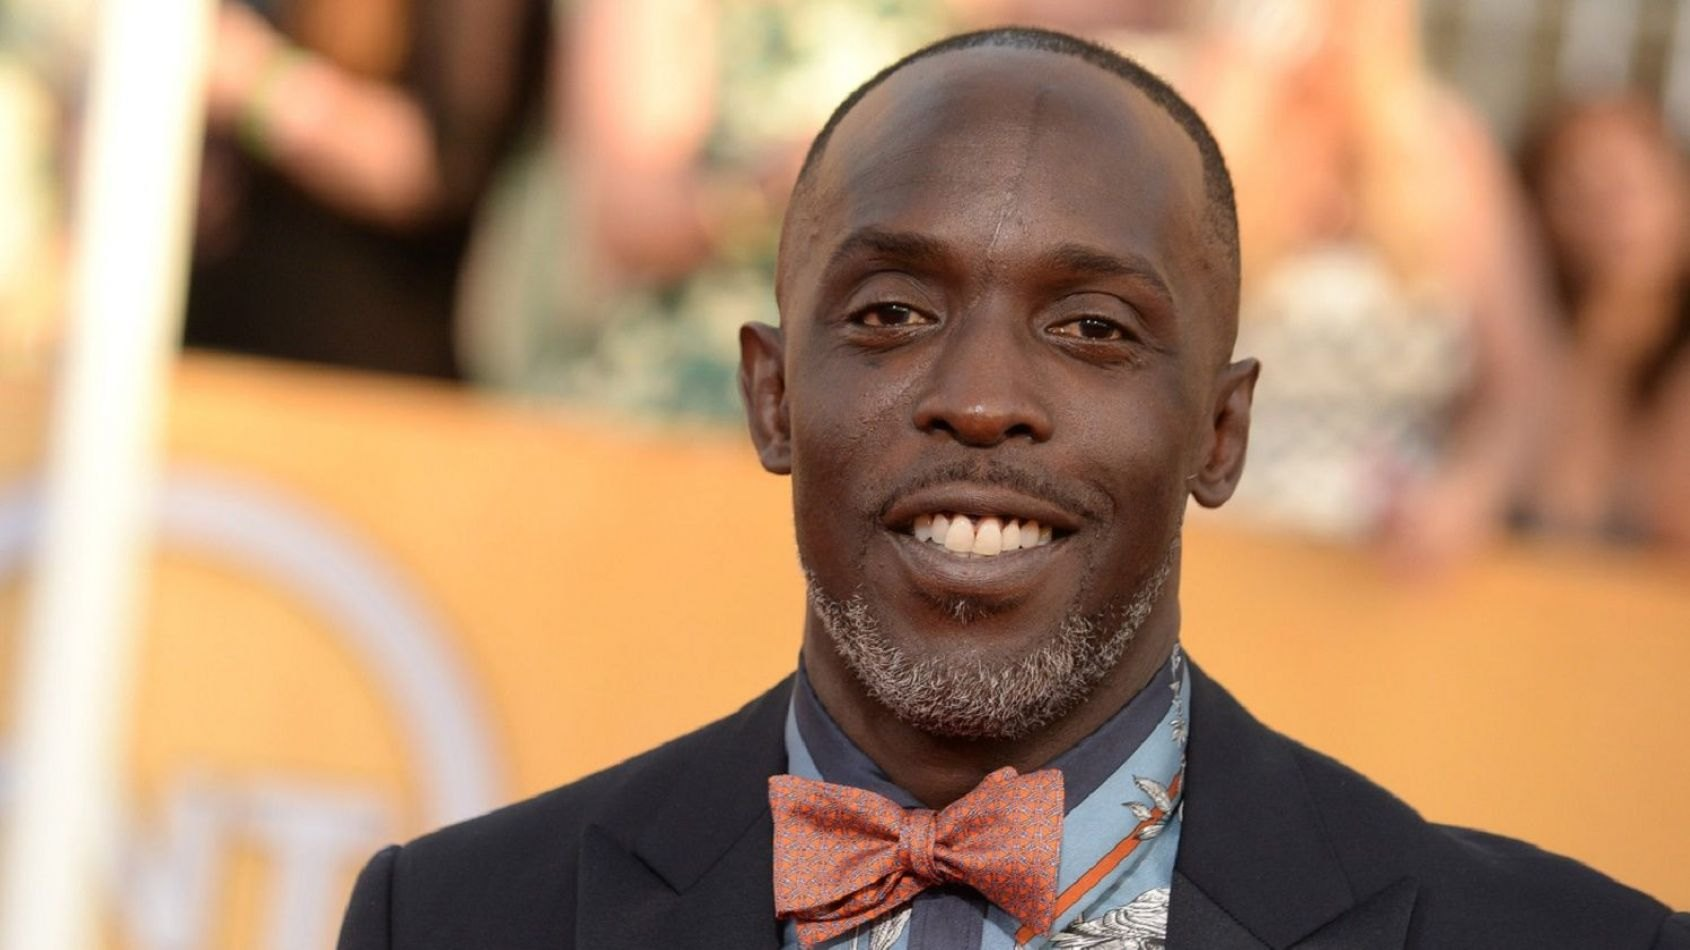 Michael K. Williams coupé du film sur Han Solo